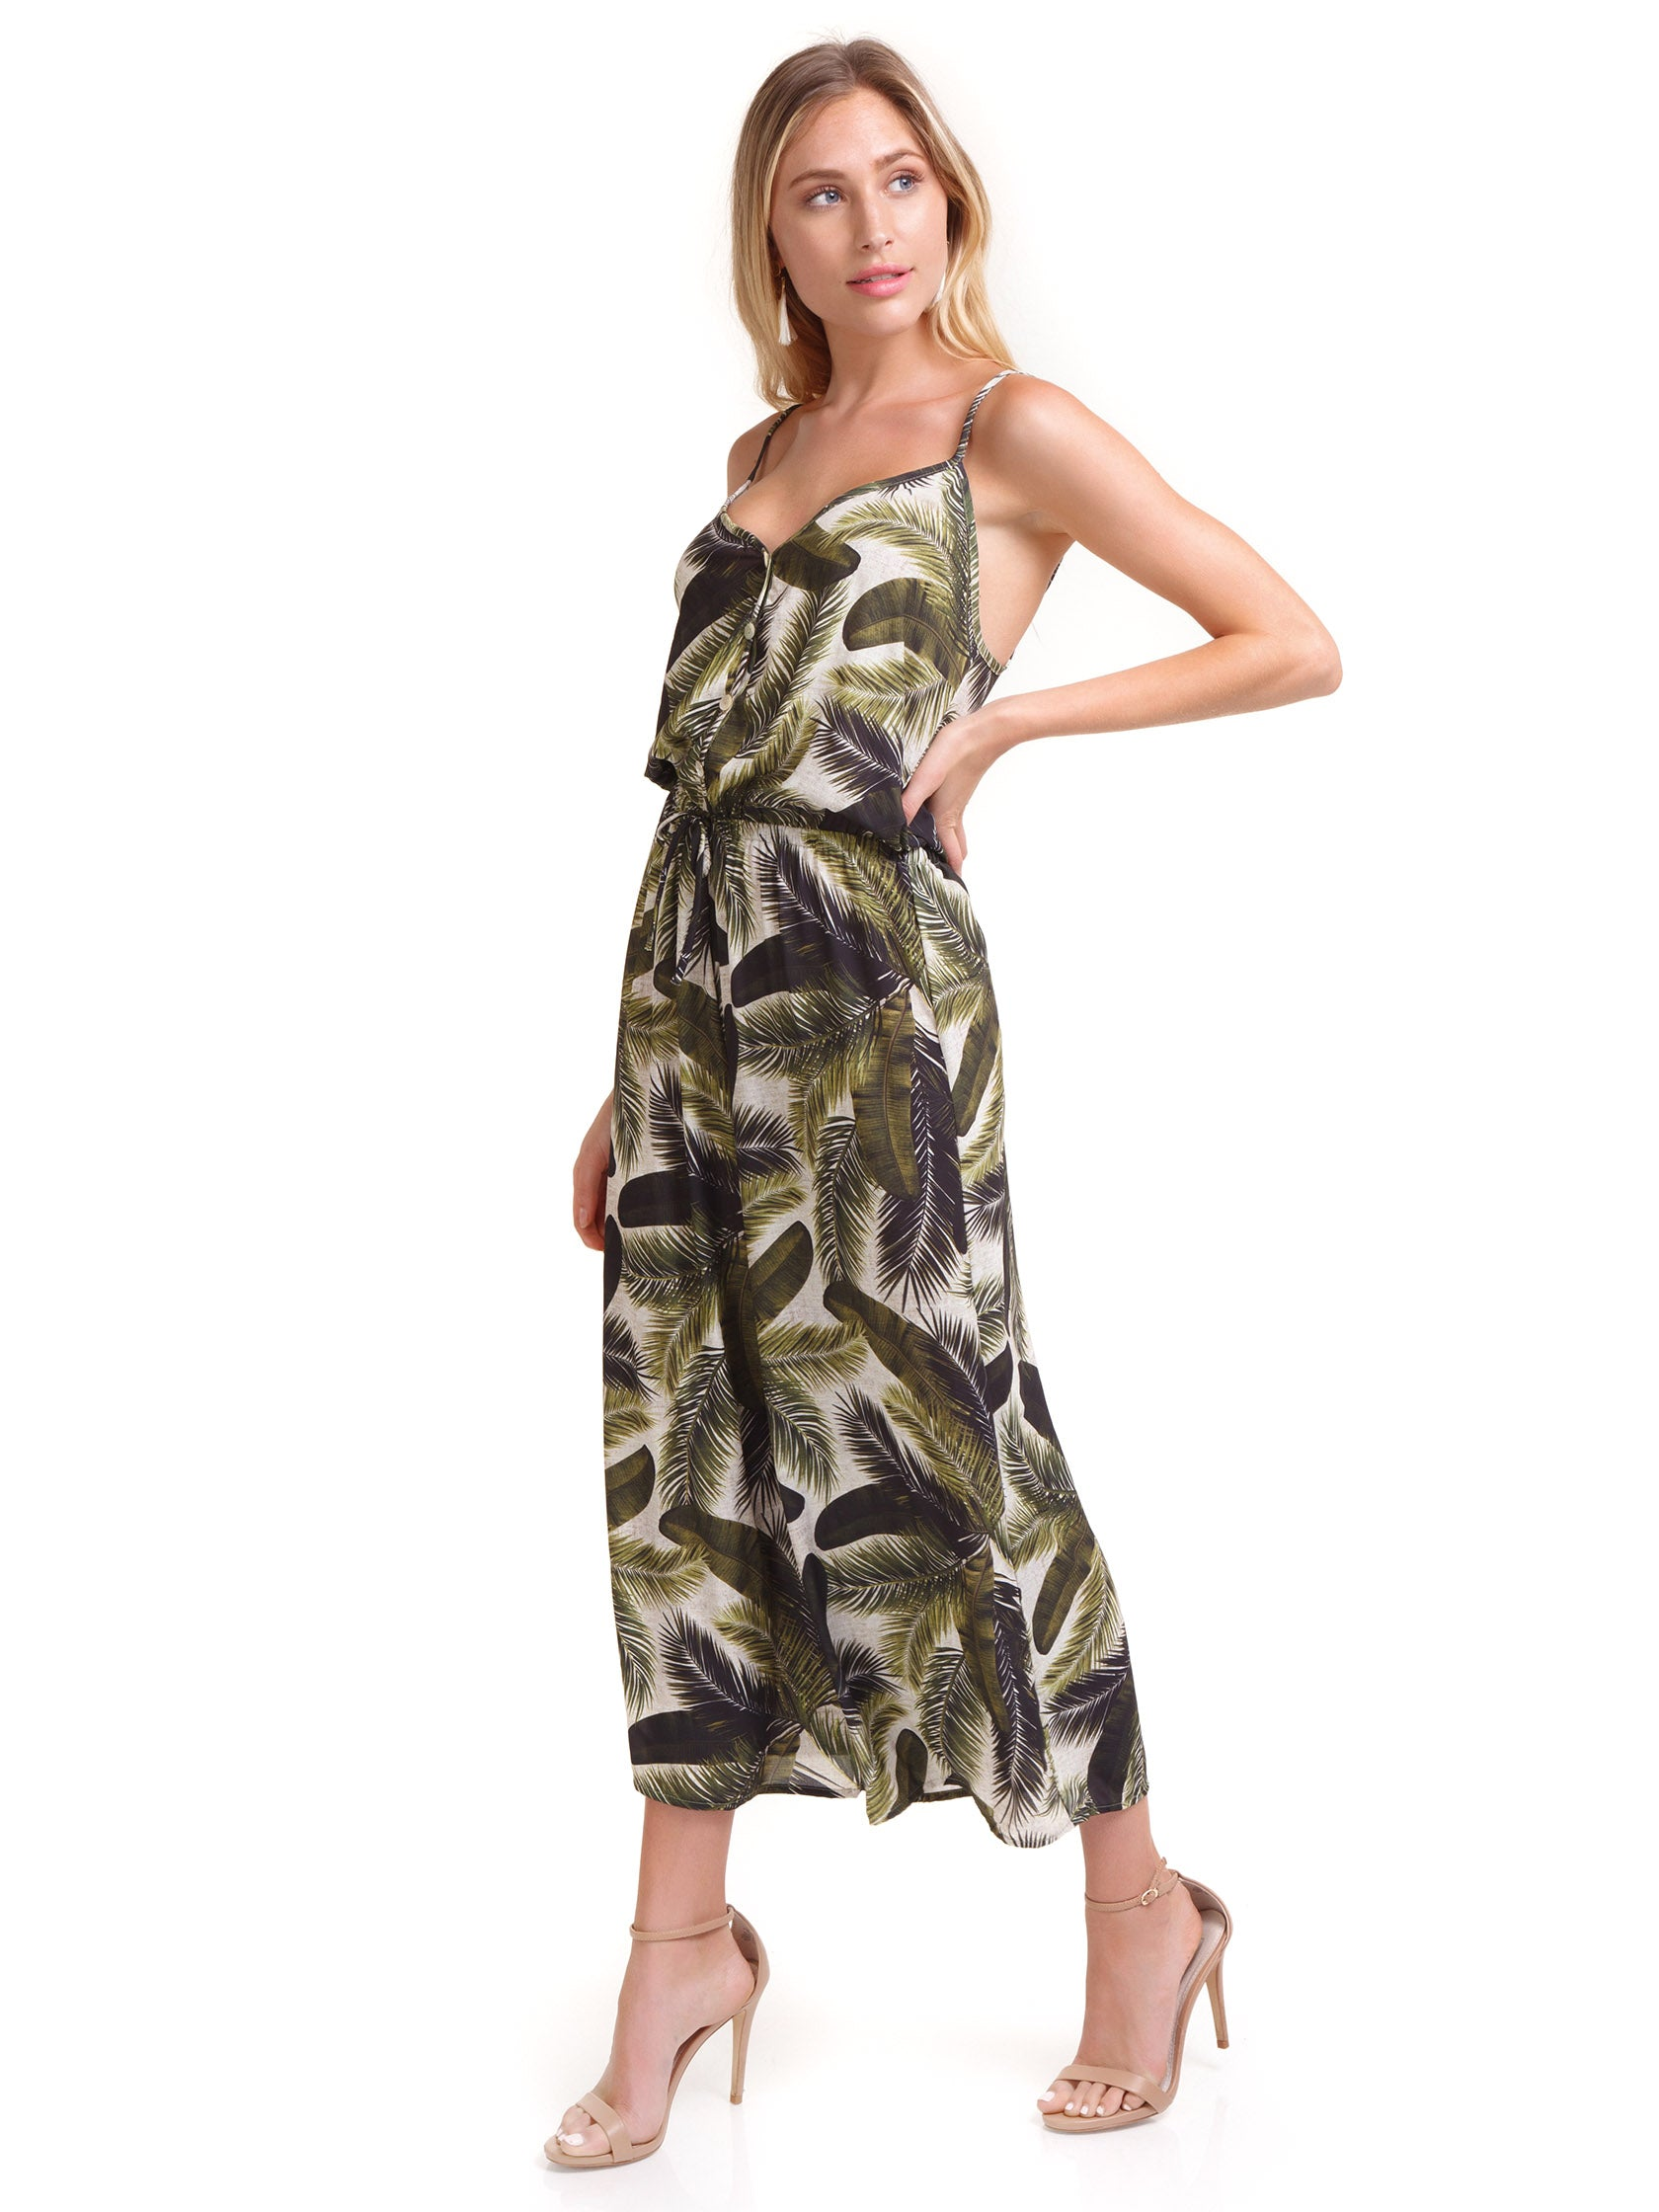 Women outfit in a jumpsuit rental from Show Me Your Mumu called Dree Playsuit